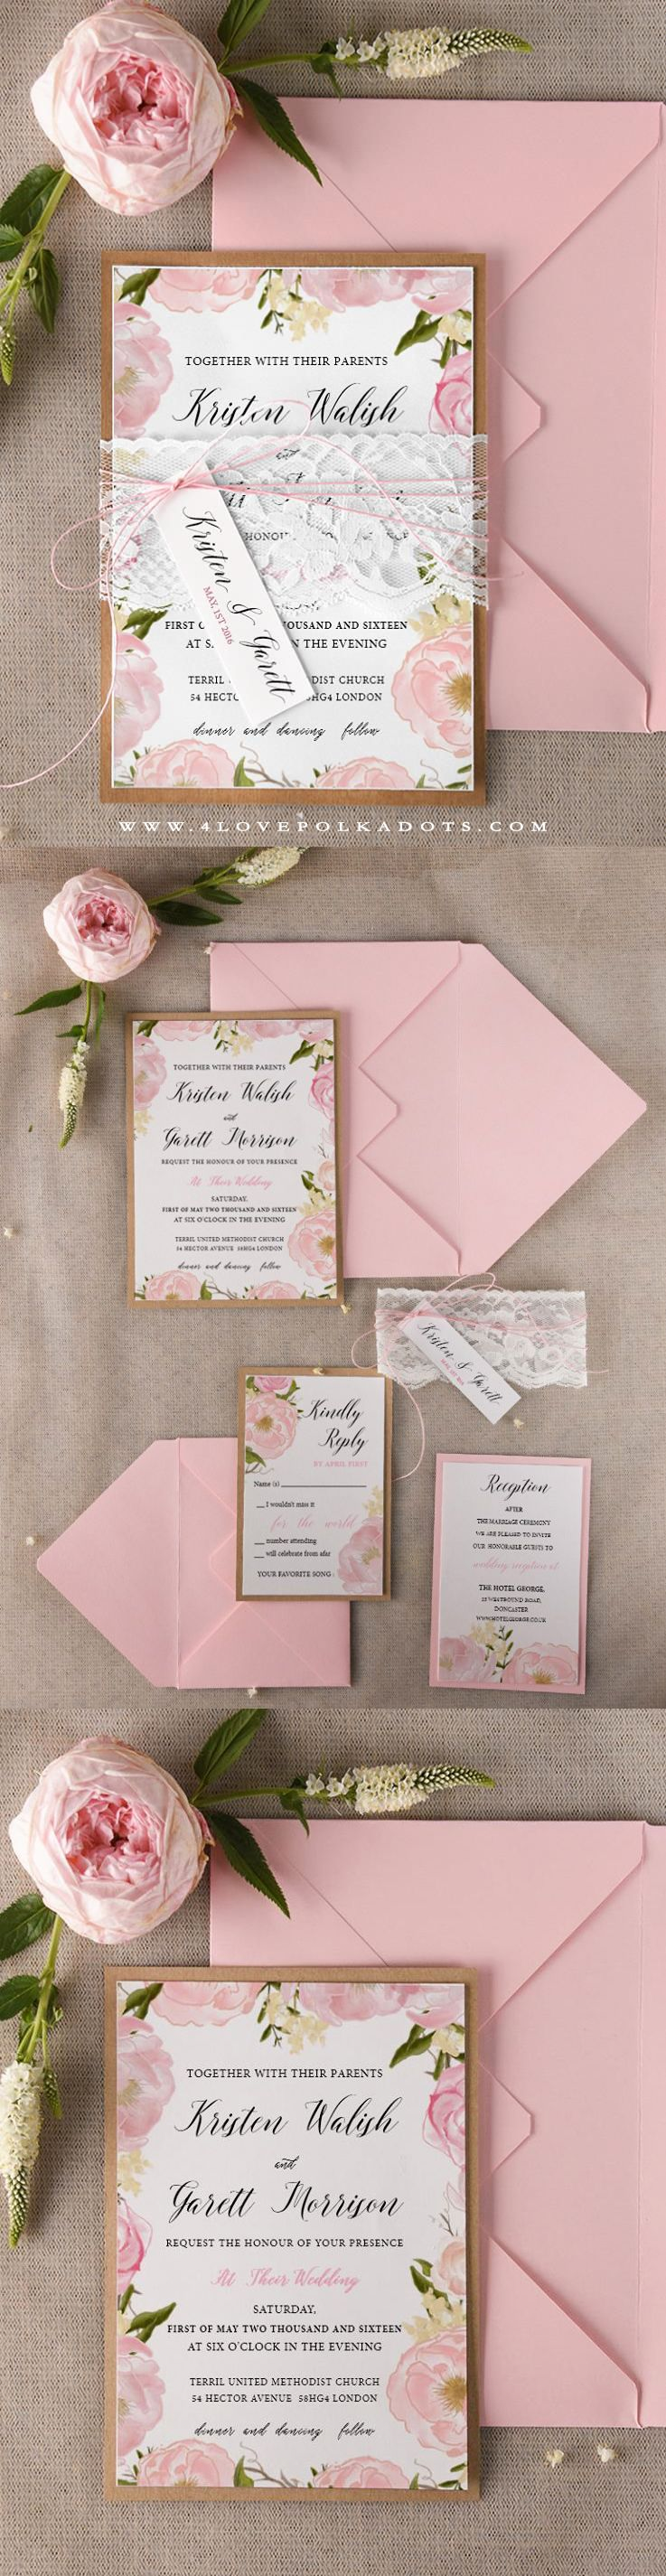 sending wedding invitations months before%0A But I would want some burgundy flowers in there  And I love gold writing   Wedding  Invitations   Pinterest   Diy wedding invitatio u